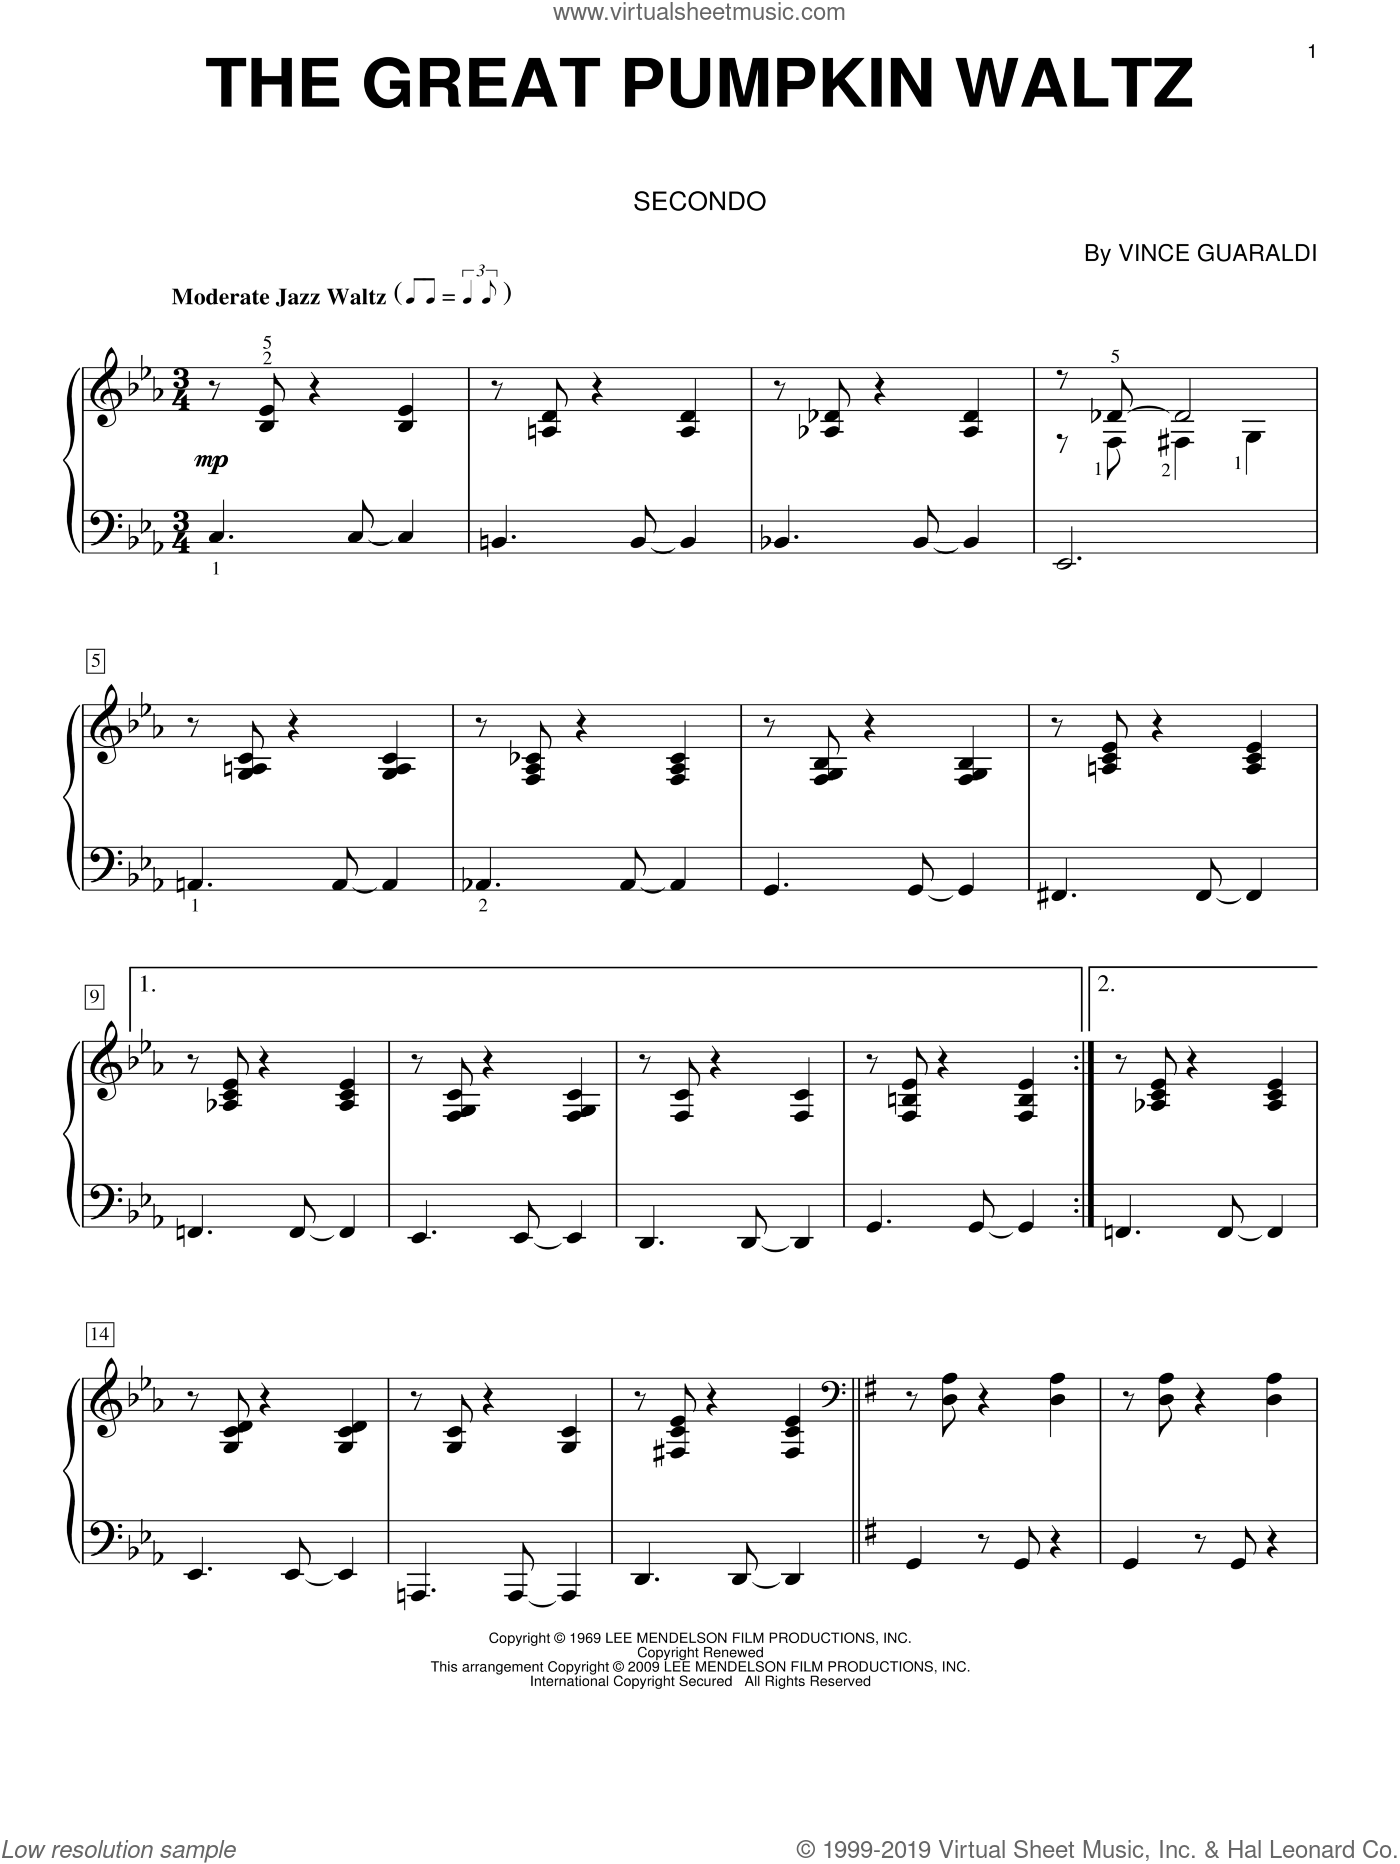 The Great Pumpkin Waltz sheet music for piano four hands by Vince Guaraldi, intermediate skill level